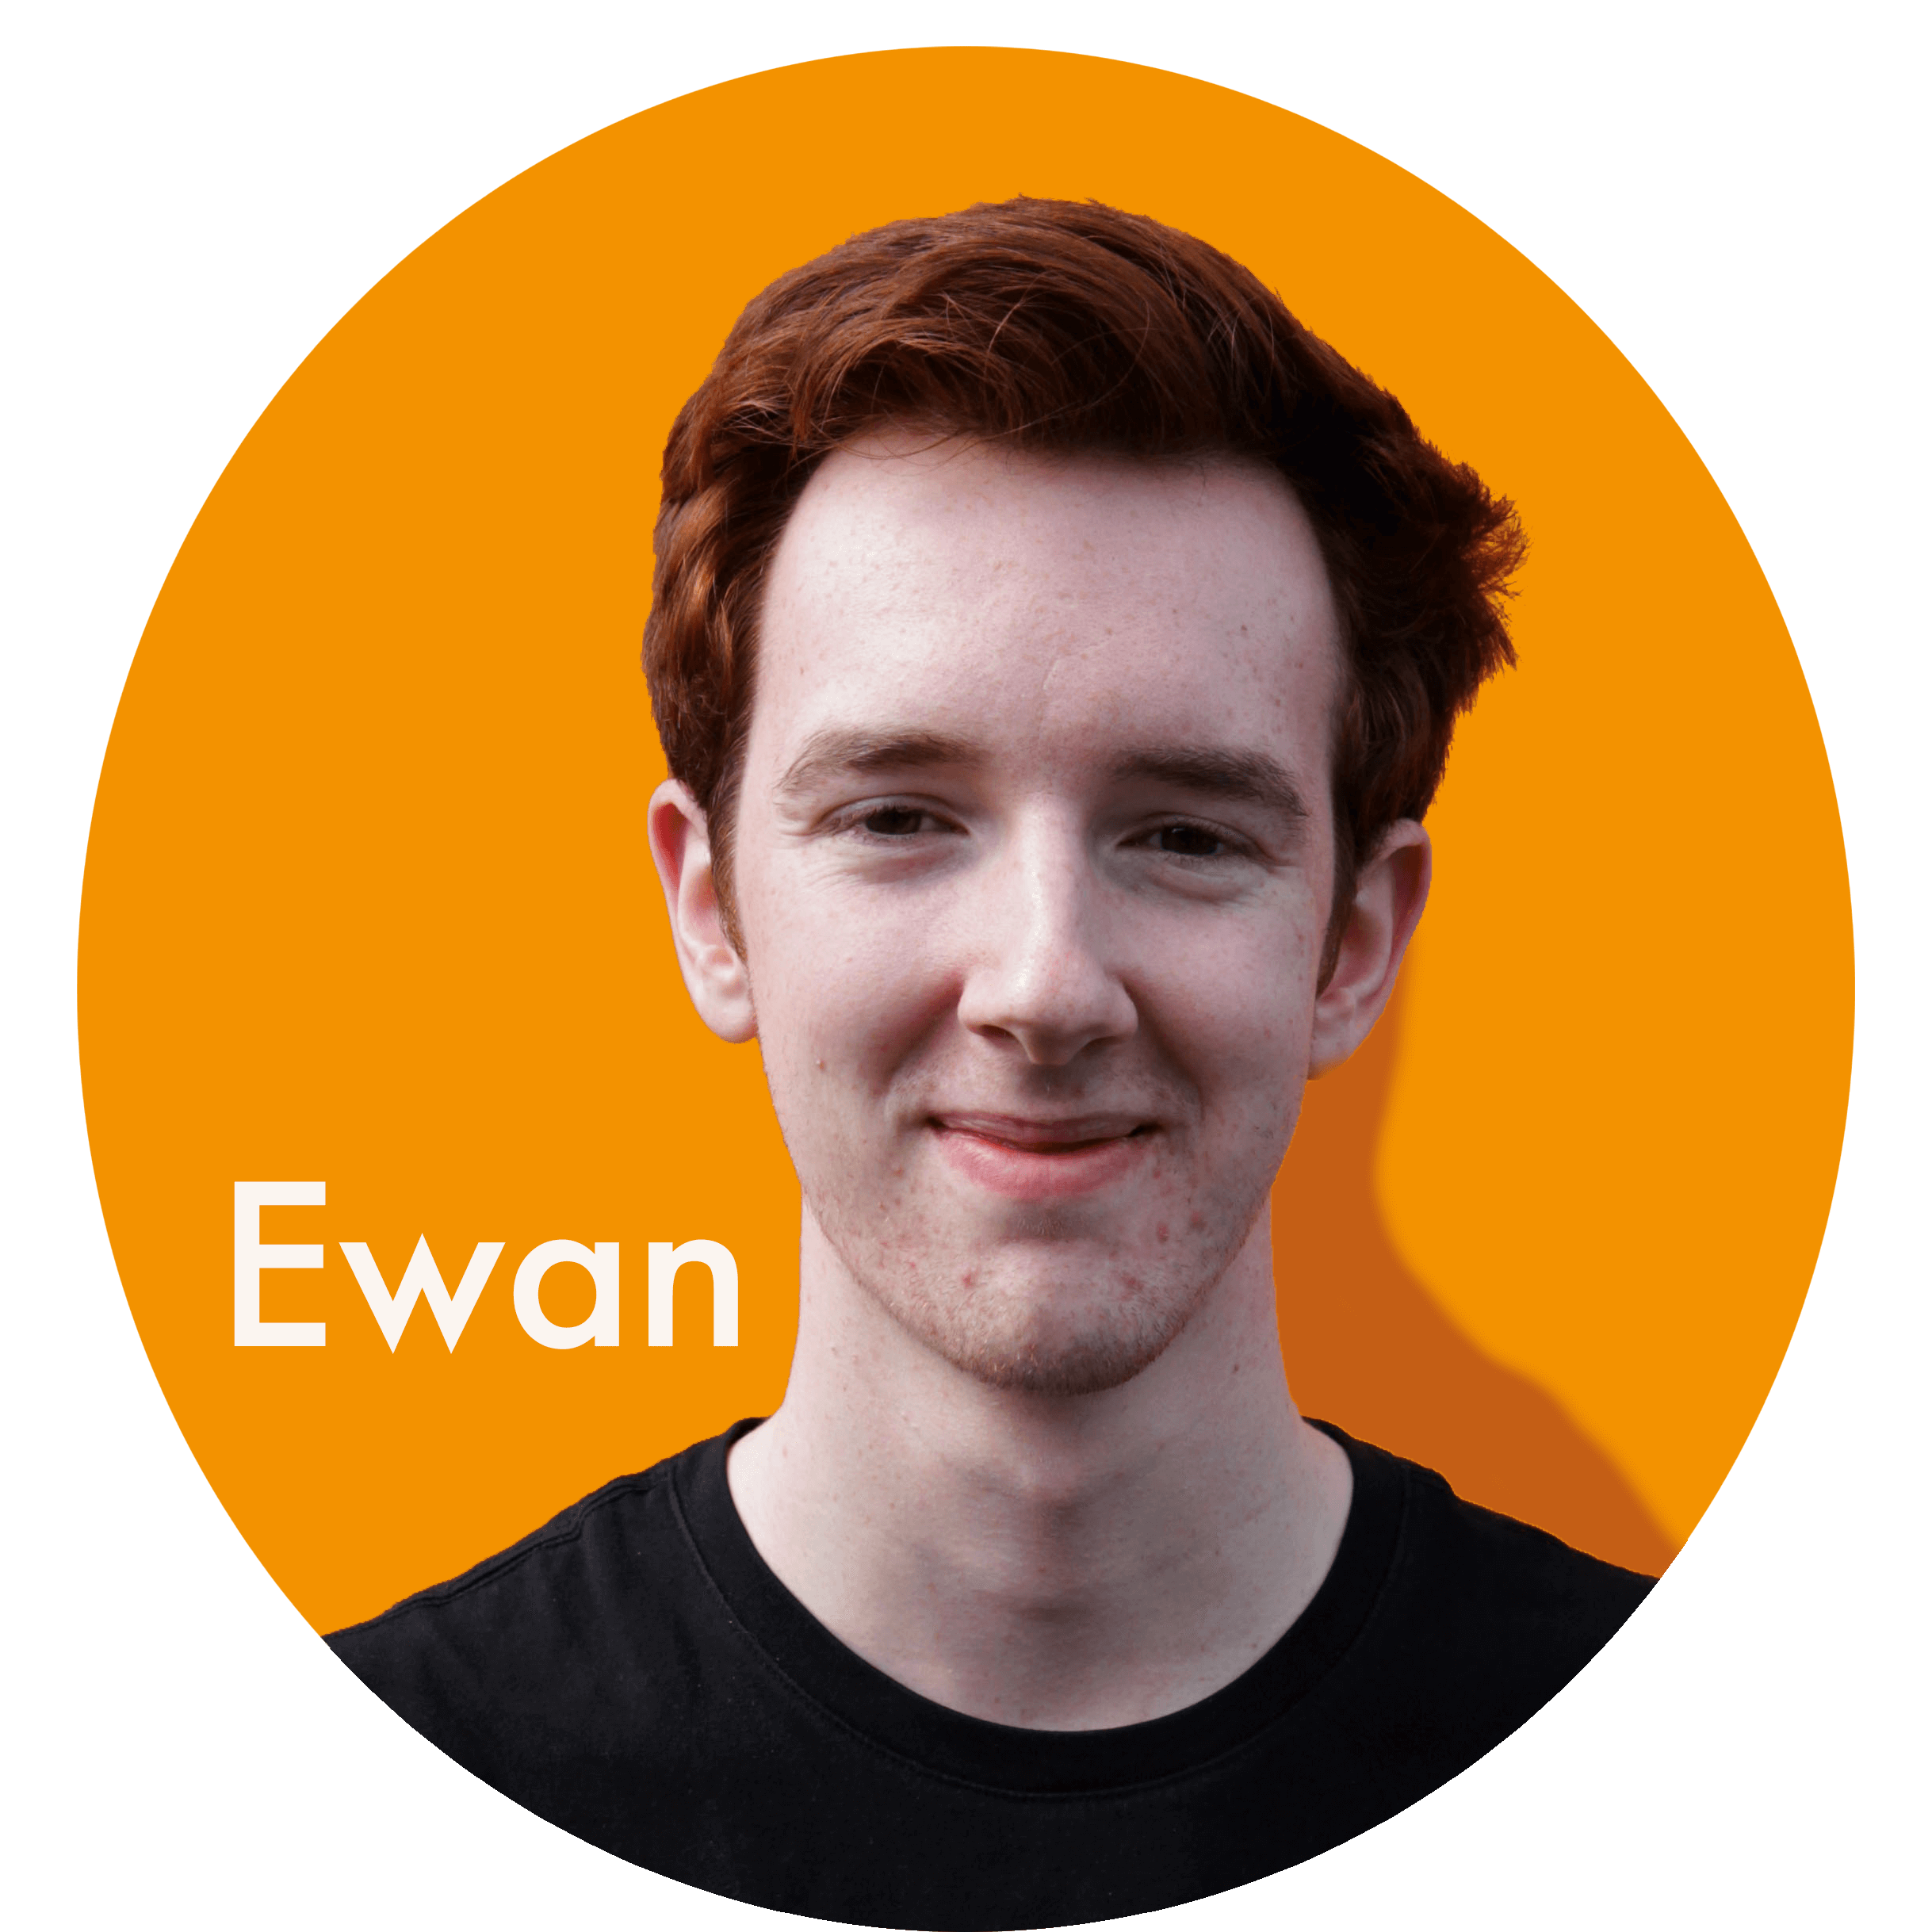 Ewan is tall and likes to talk about films. His one-liners are second to none and always have the team in fits of giggles. Thanks, Ewan.